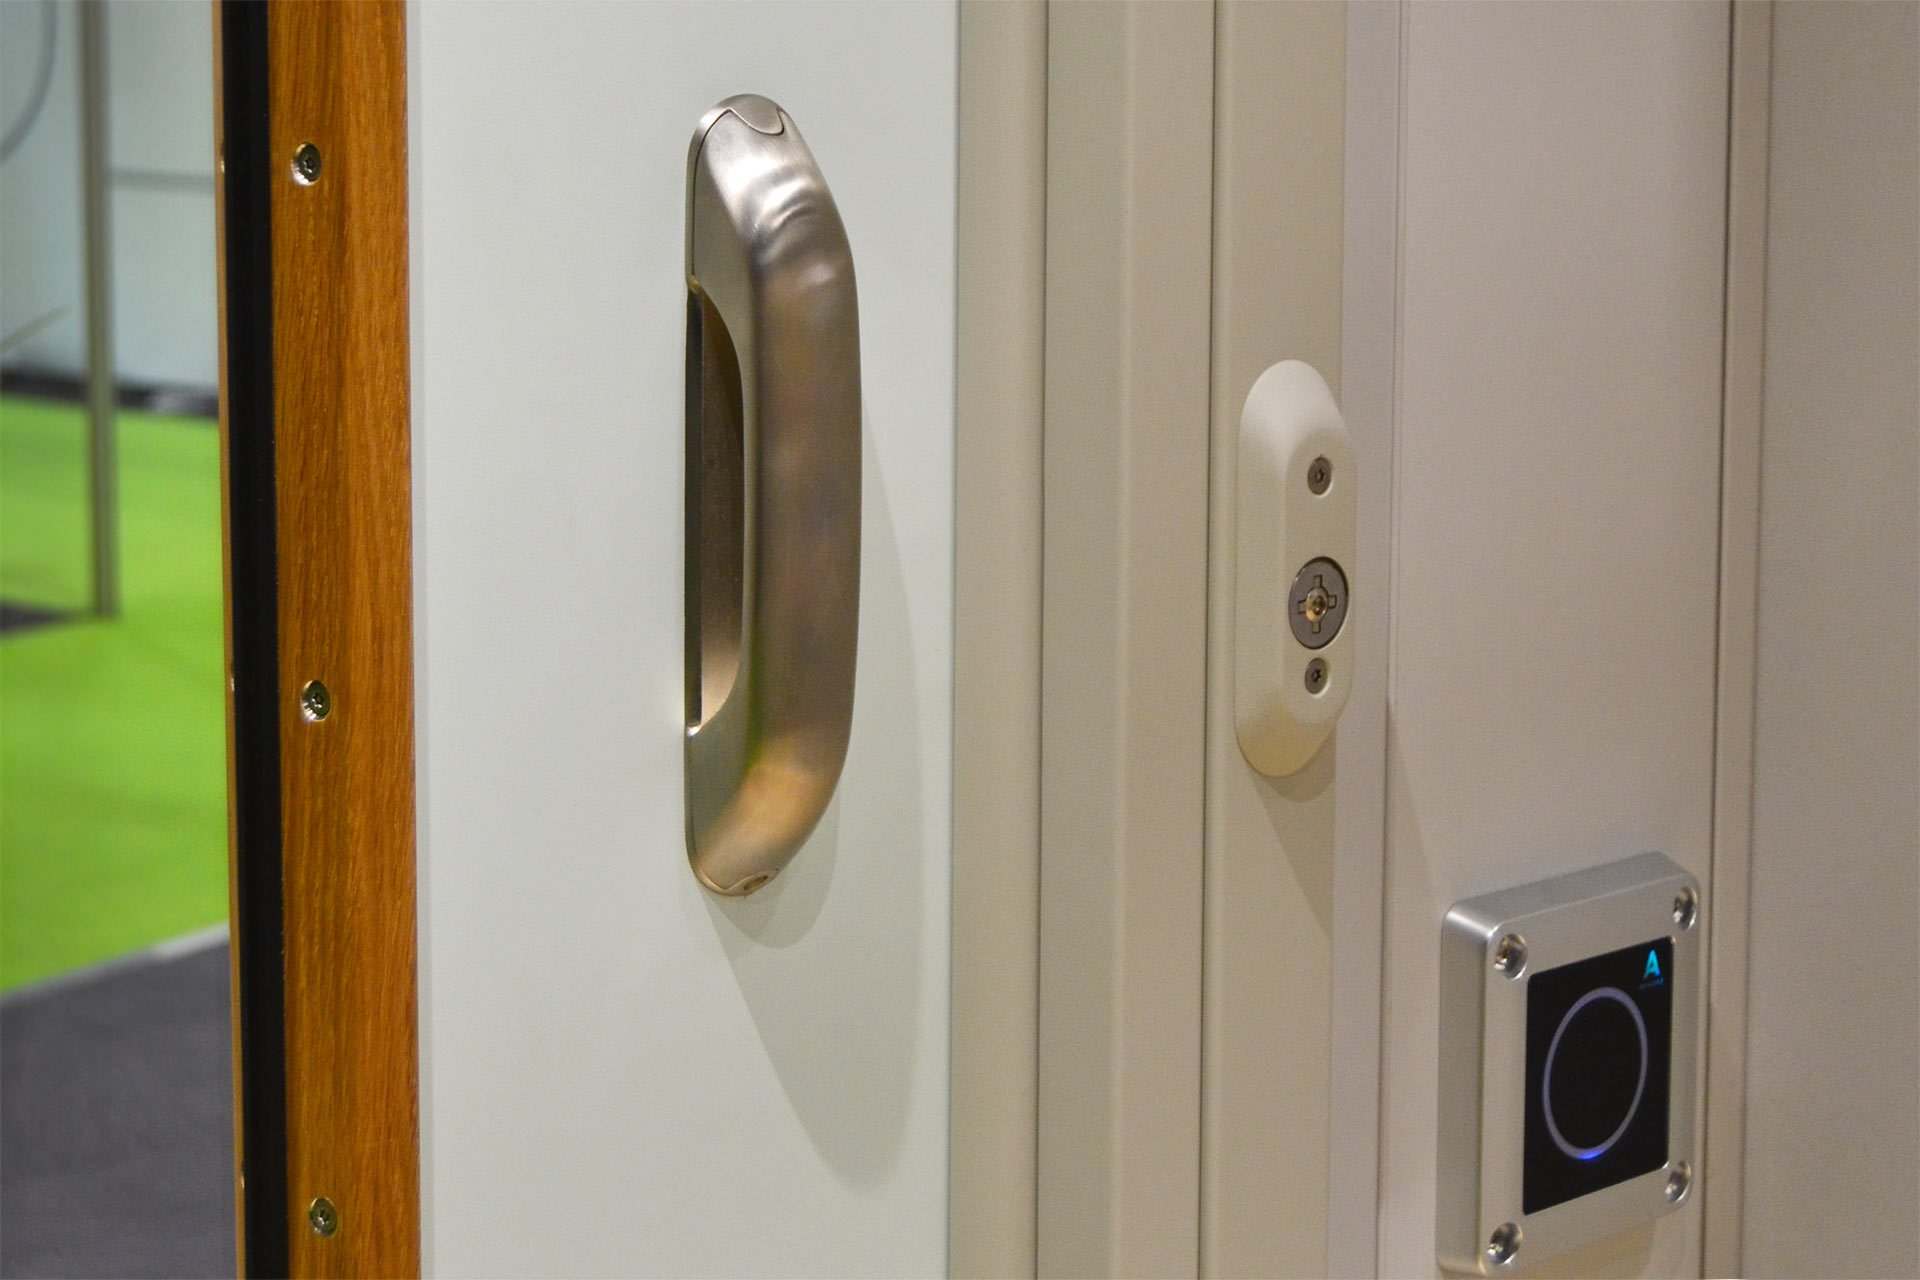 Ward entry electronic lock operated by a wall reader